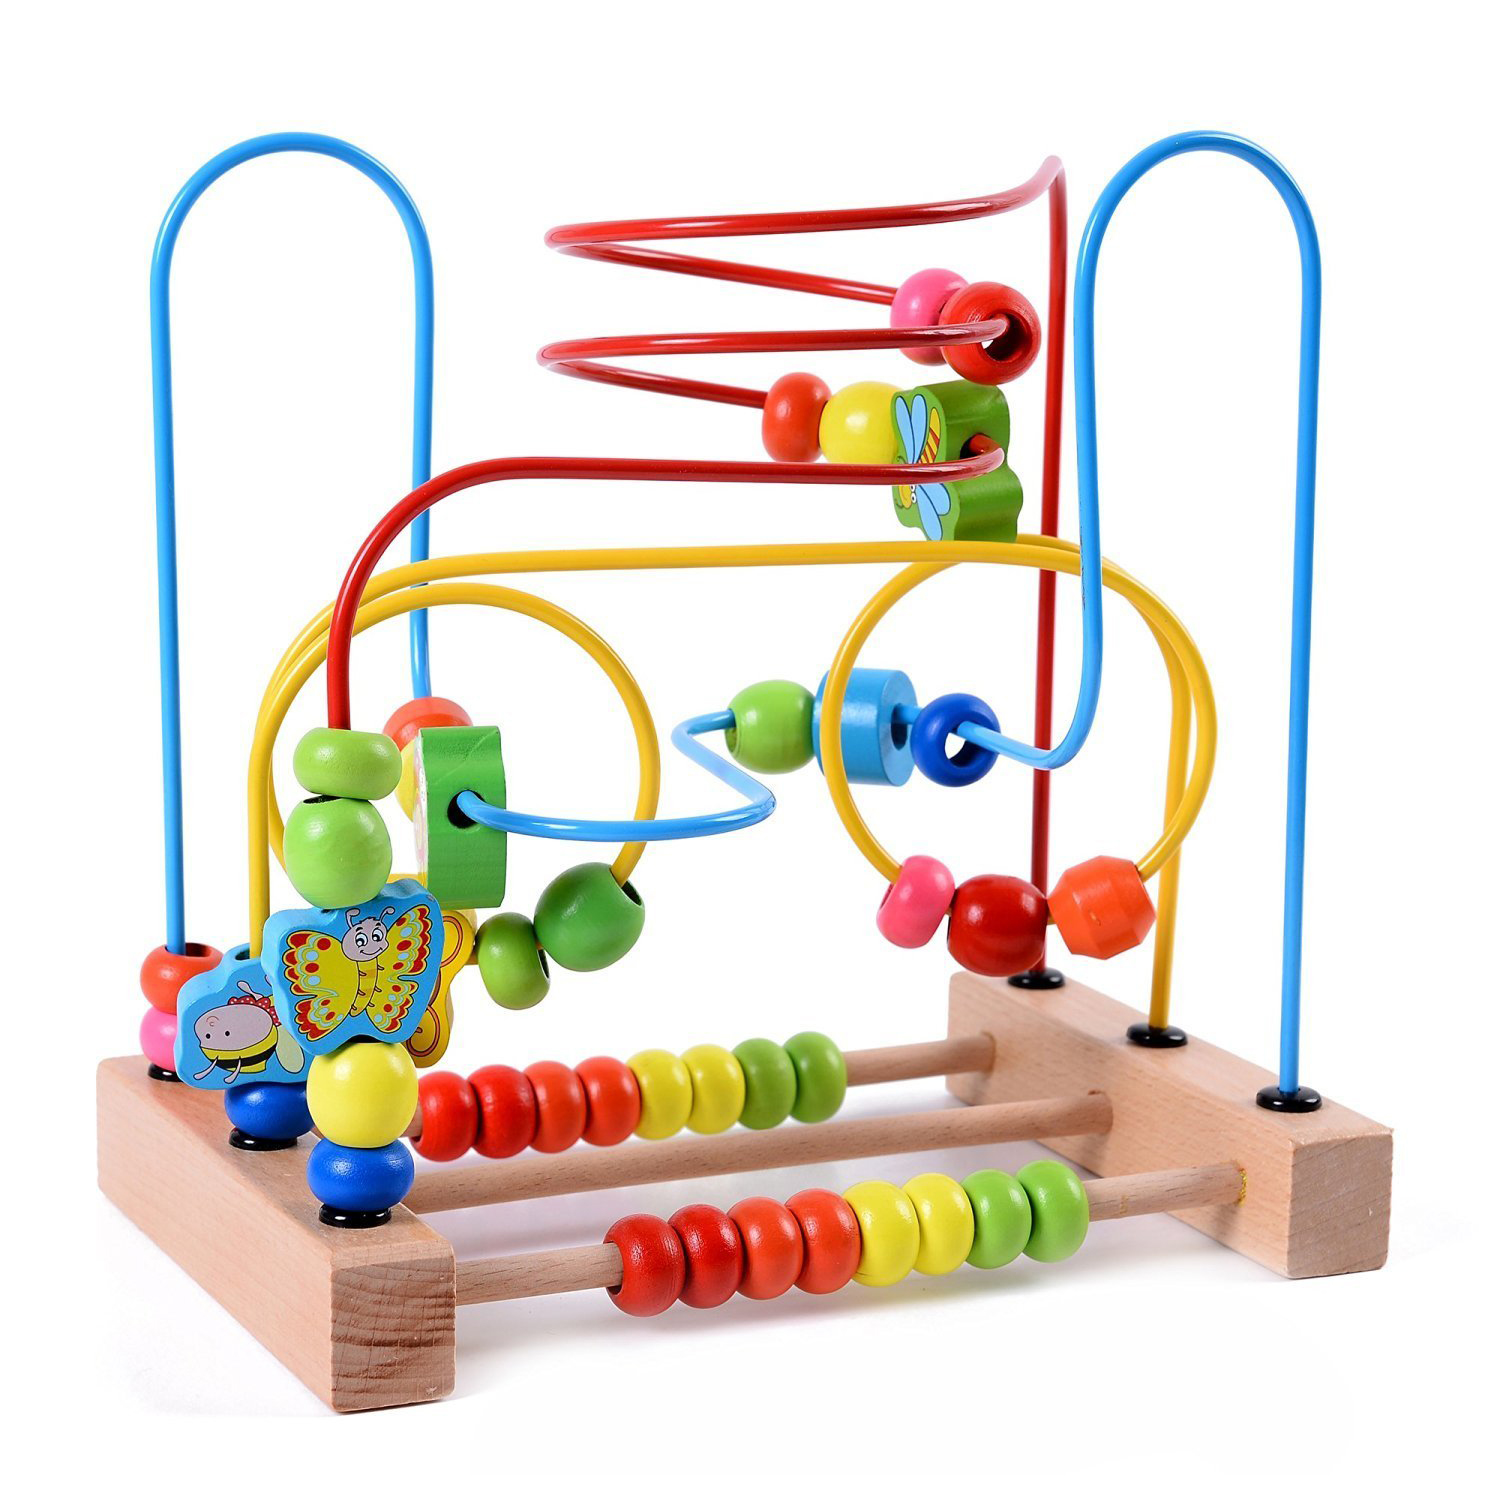 ABWE Best Sale MWZ Wooden Baby Toddler Toys Circle First Bead Maze for Boys GirlsABWE Best Sale MWZ Wooden Baby Toddler Toys Circle First Bead Maze for Boys Girls